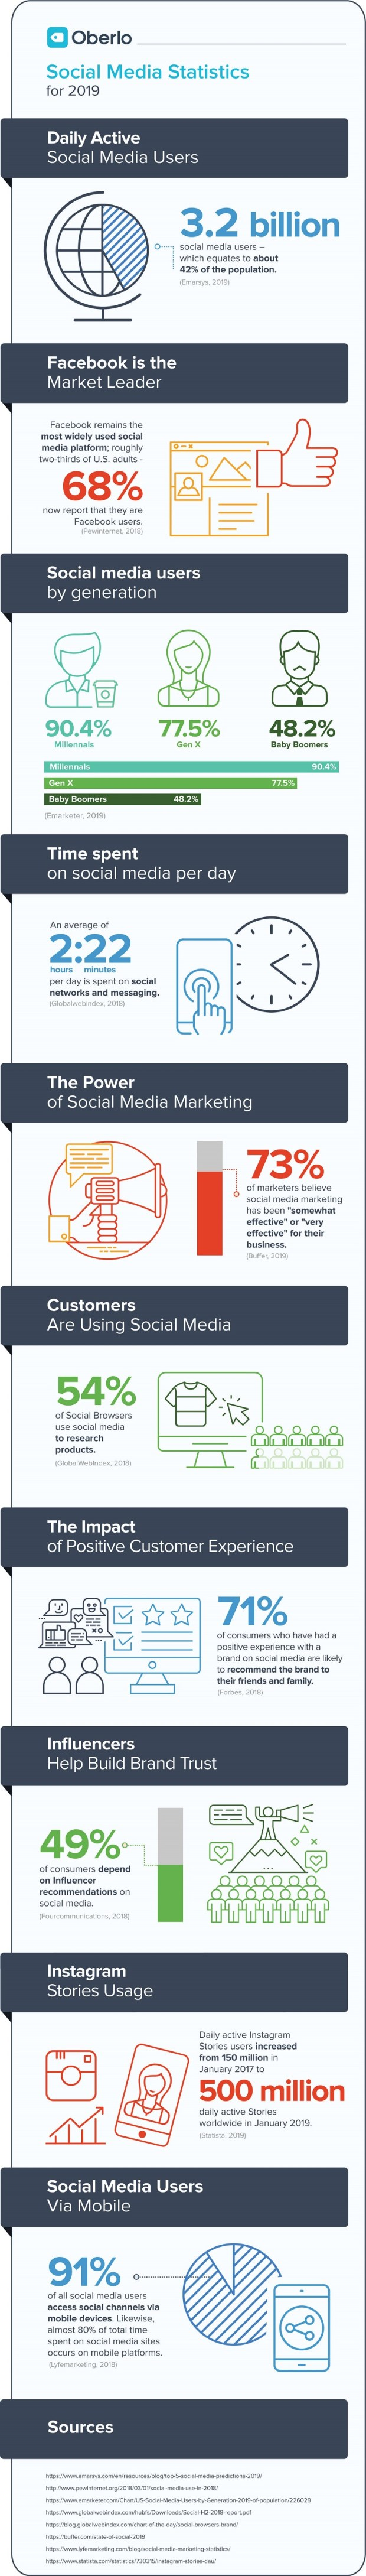 Infographic lists a range of social media usage stats and insights